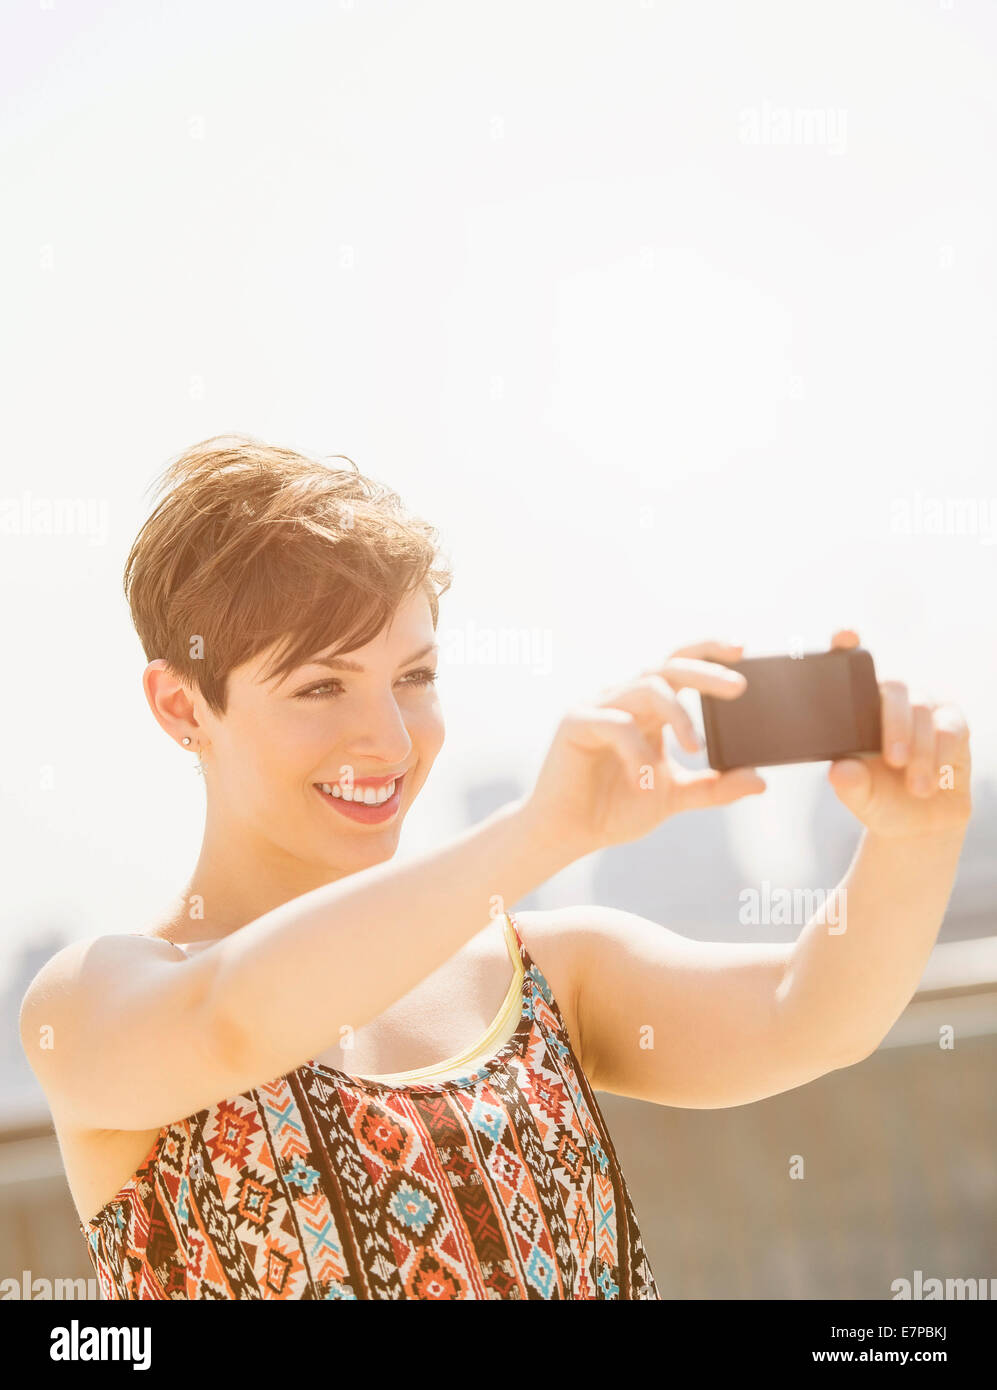 Young woman taking selfie with mobile phone - Stock Image